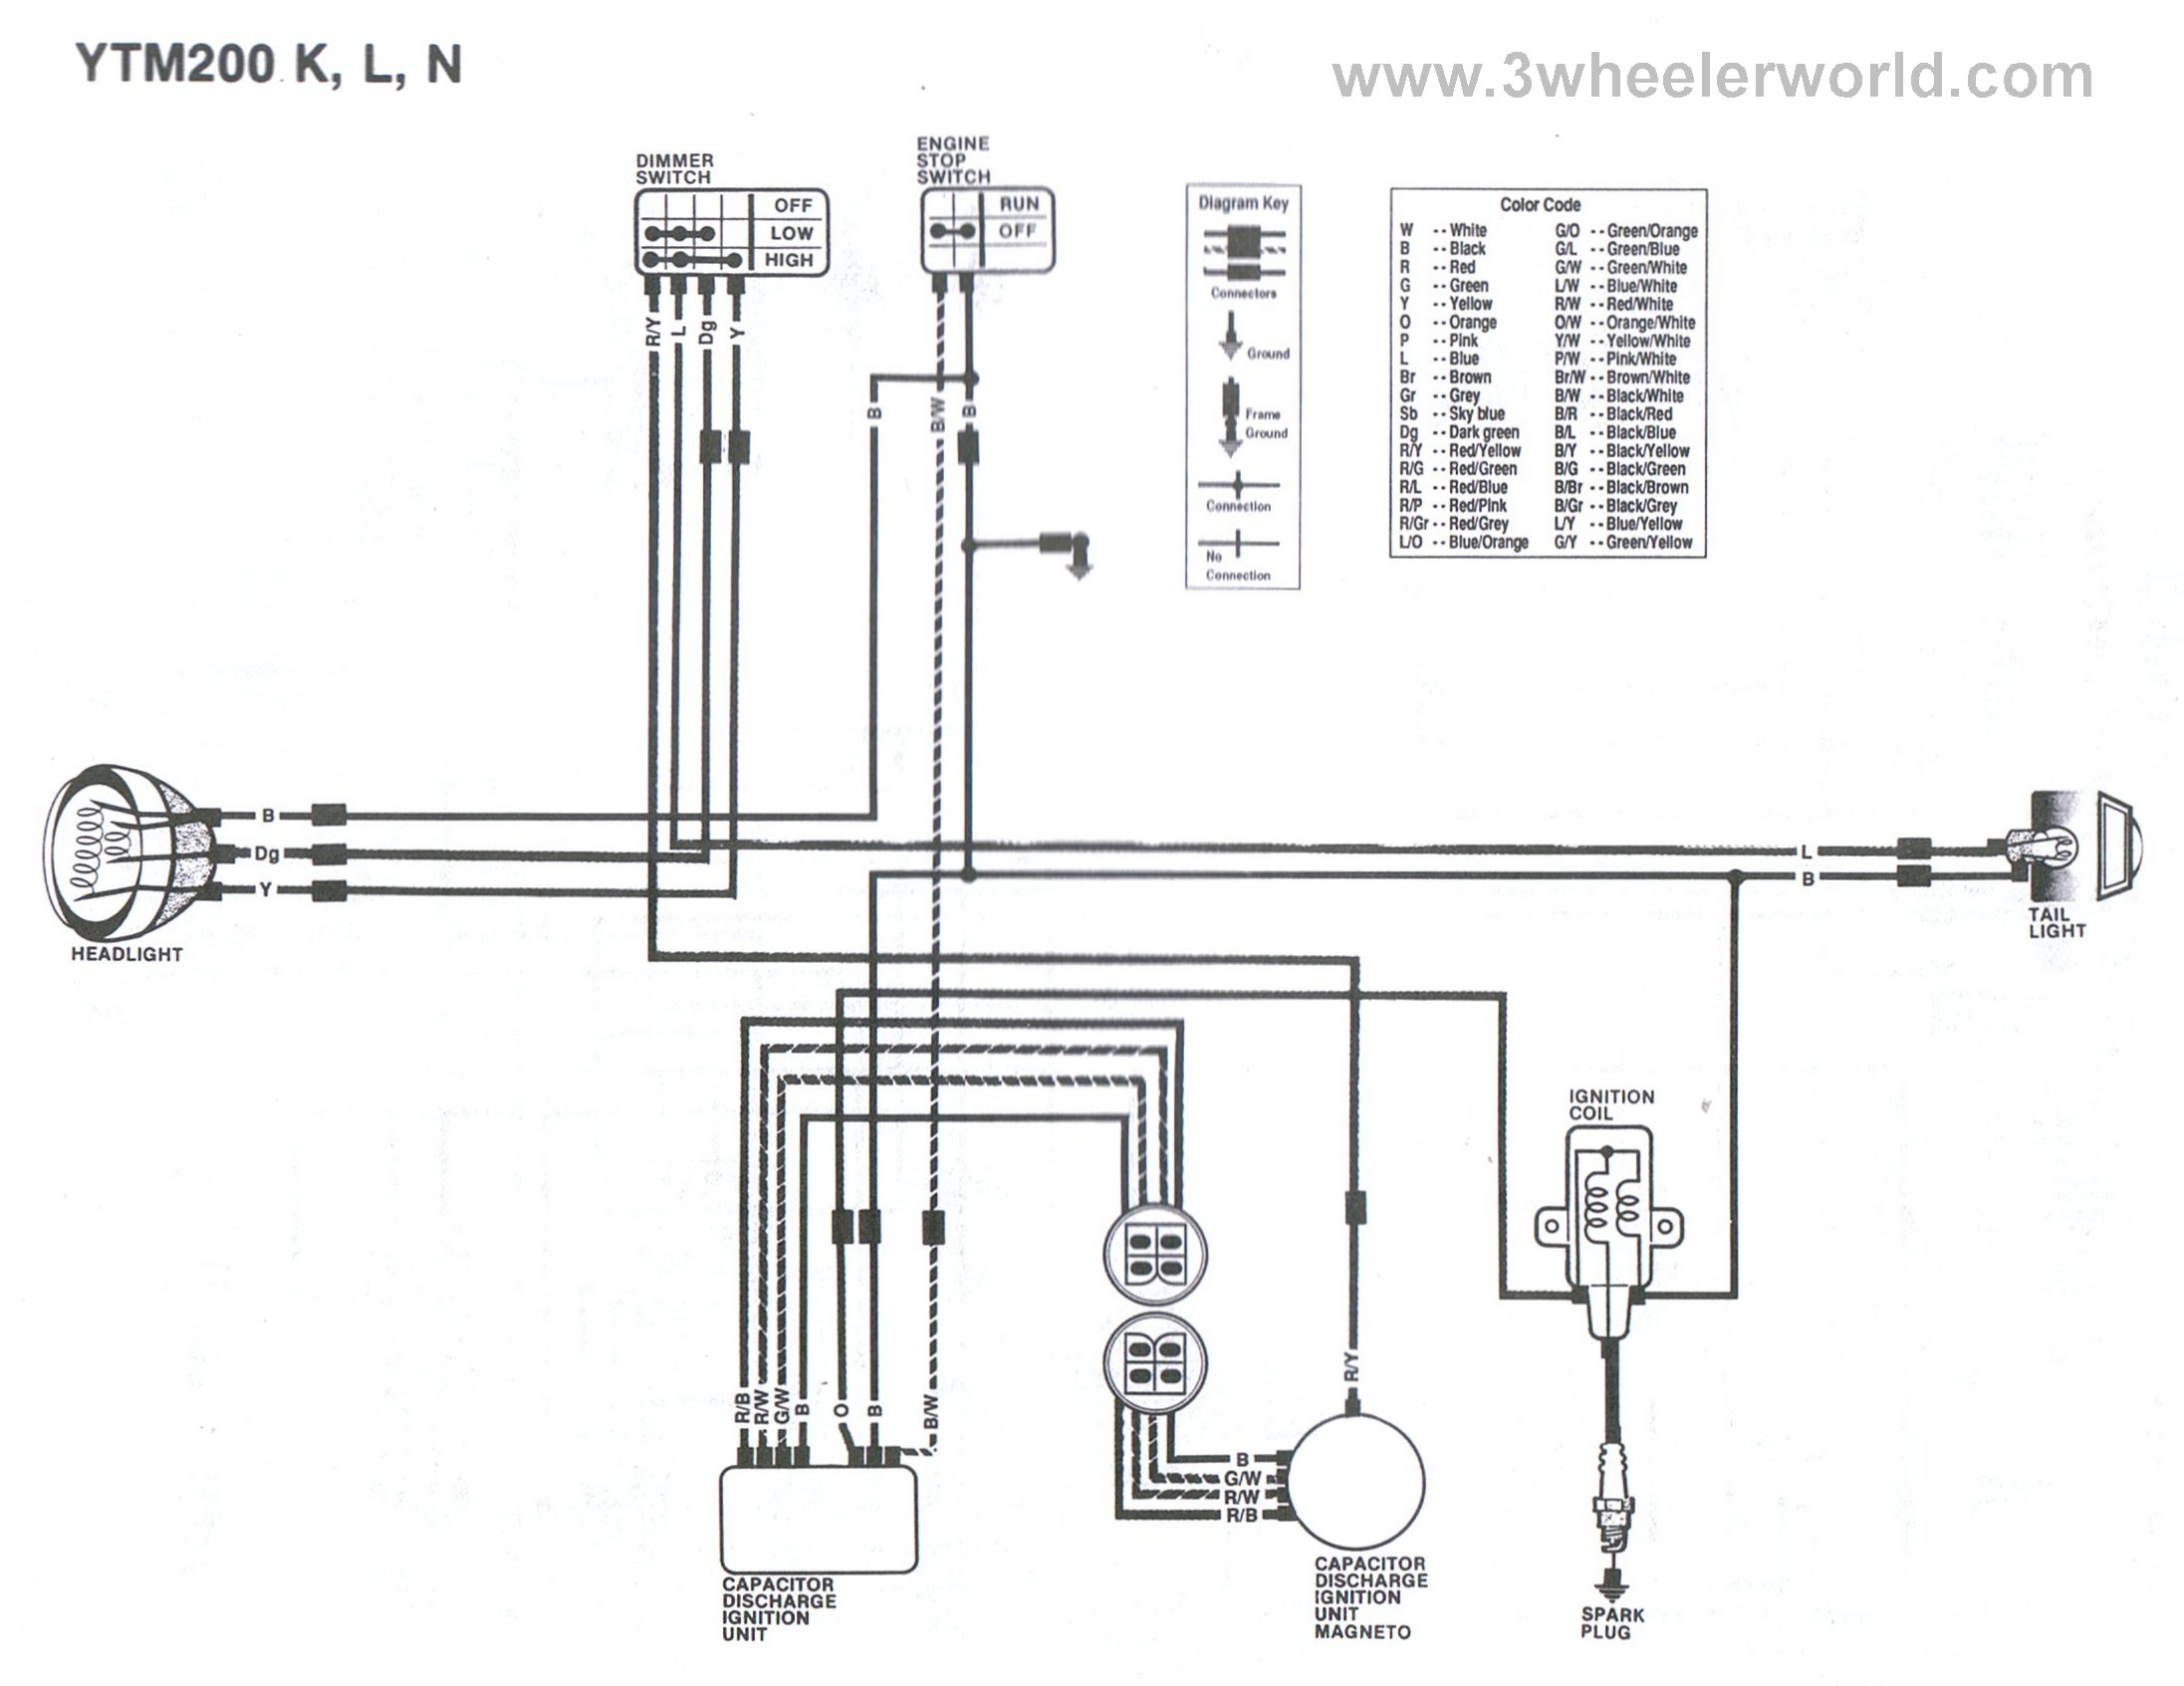 3 wheeler world tech help yamaha wiring diagrams rh 3wheelerworld com Yamaha  90 Outboard Wiring Diagram